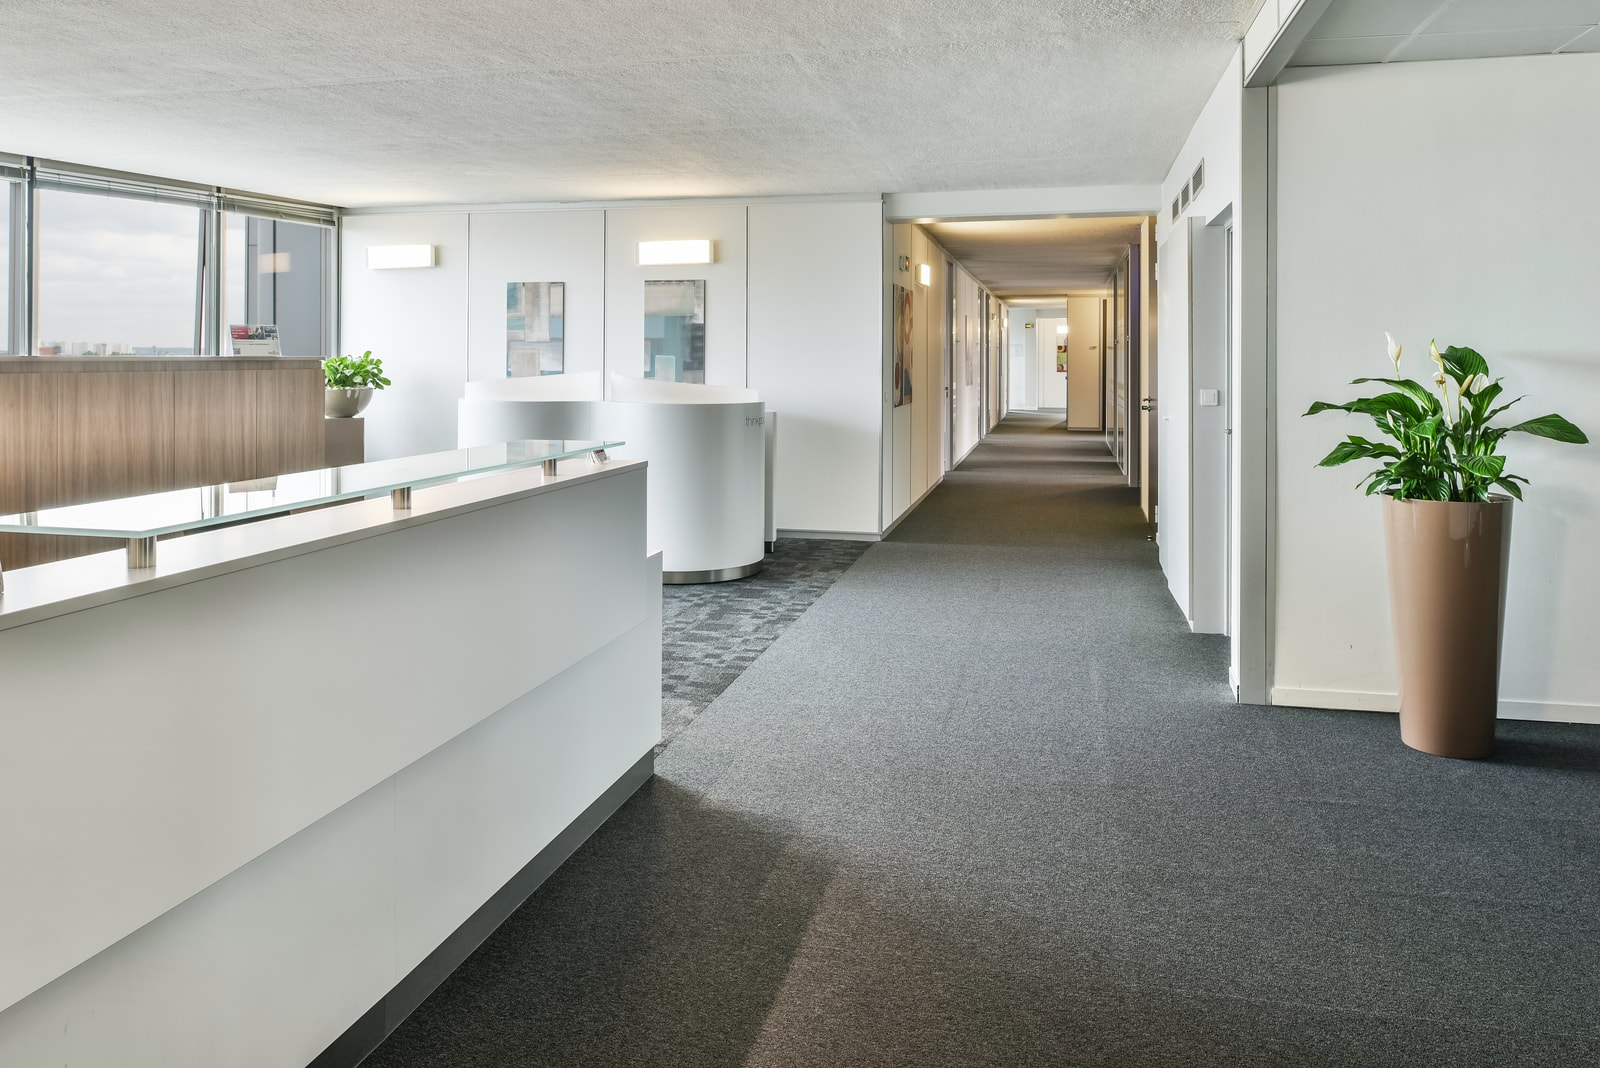 Meeting rooms and common areas